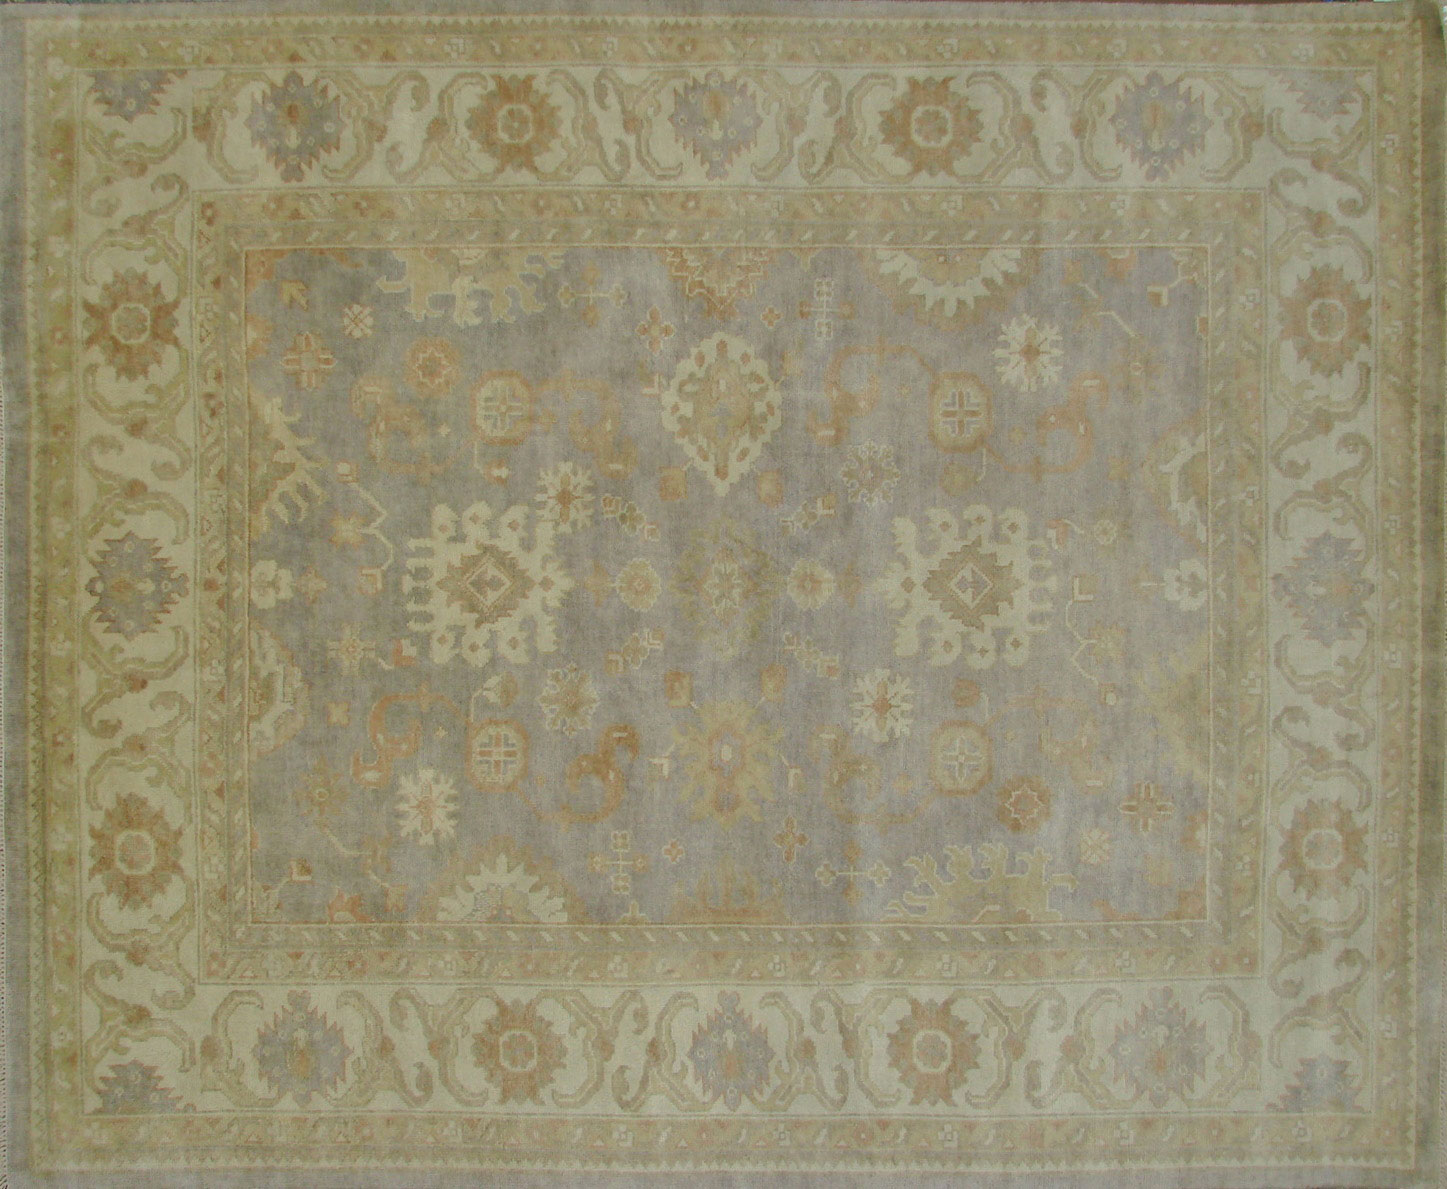 8x10 Oushak Hand Knotted Wool Area Rug - MR18211